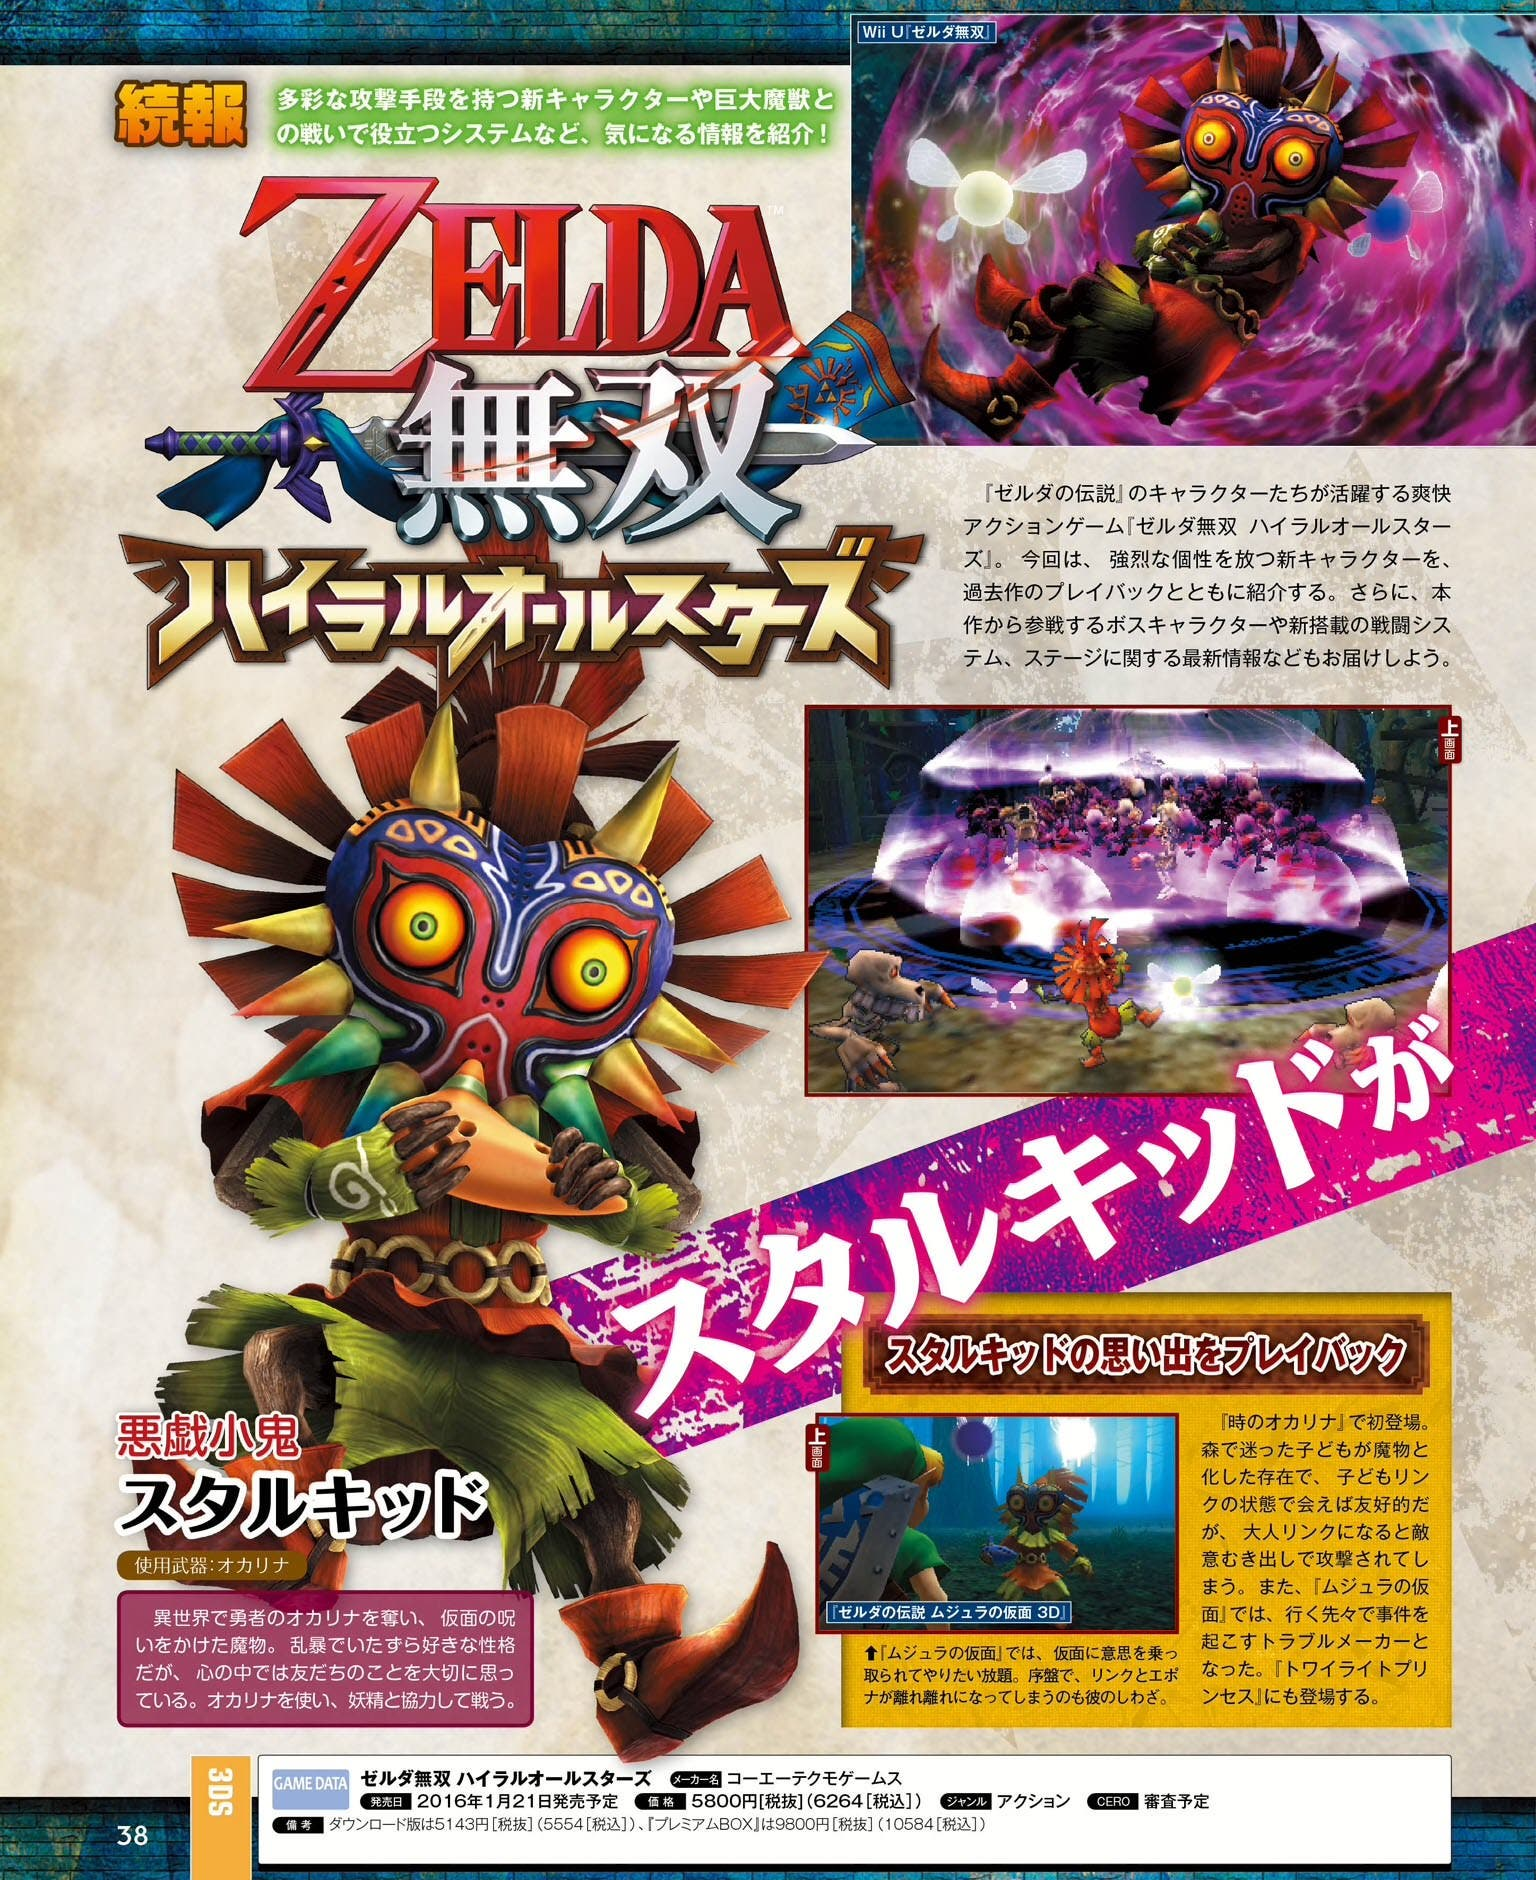 Ronda de scans de Famitsu: 'Hyrule Warriors Legends', 'Medabots 9', 'Project X Zone 2', 'Shin Megami Tensei IV Final', y más